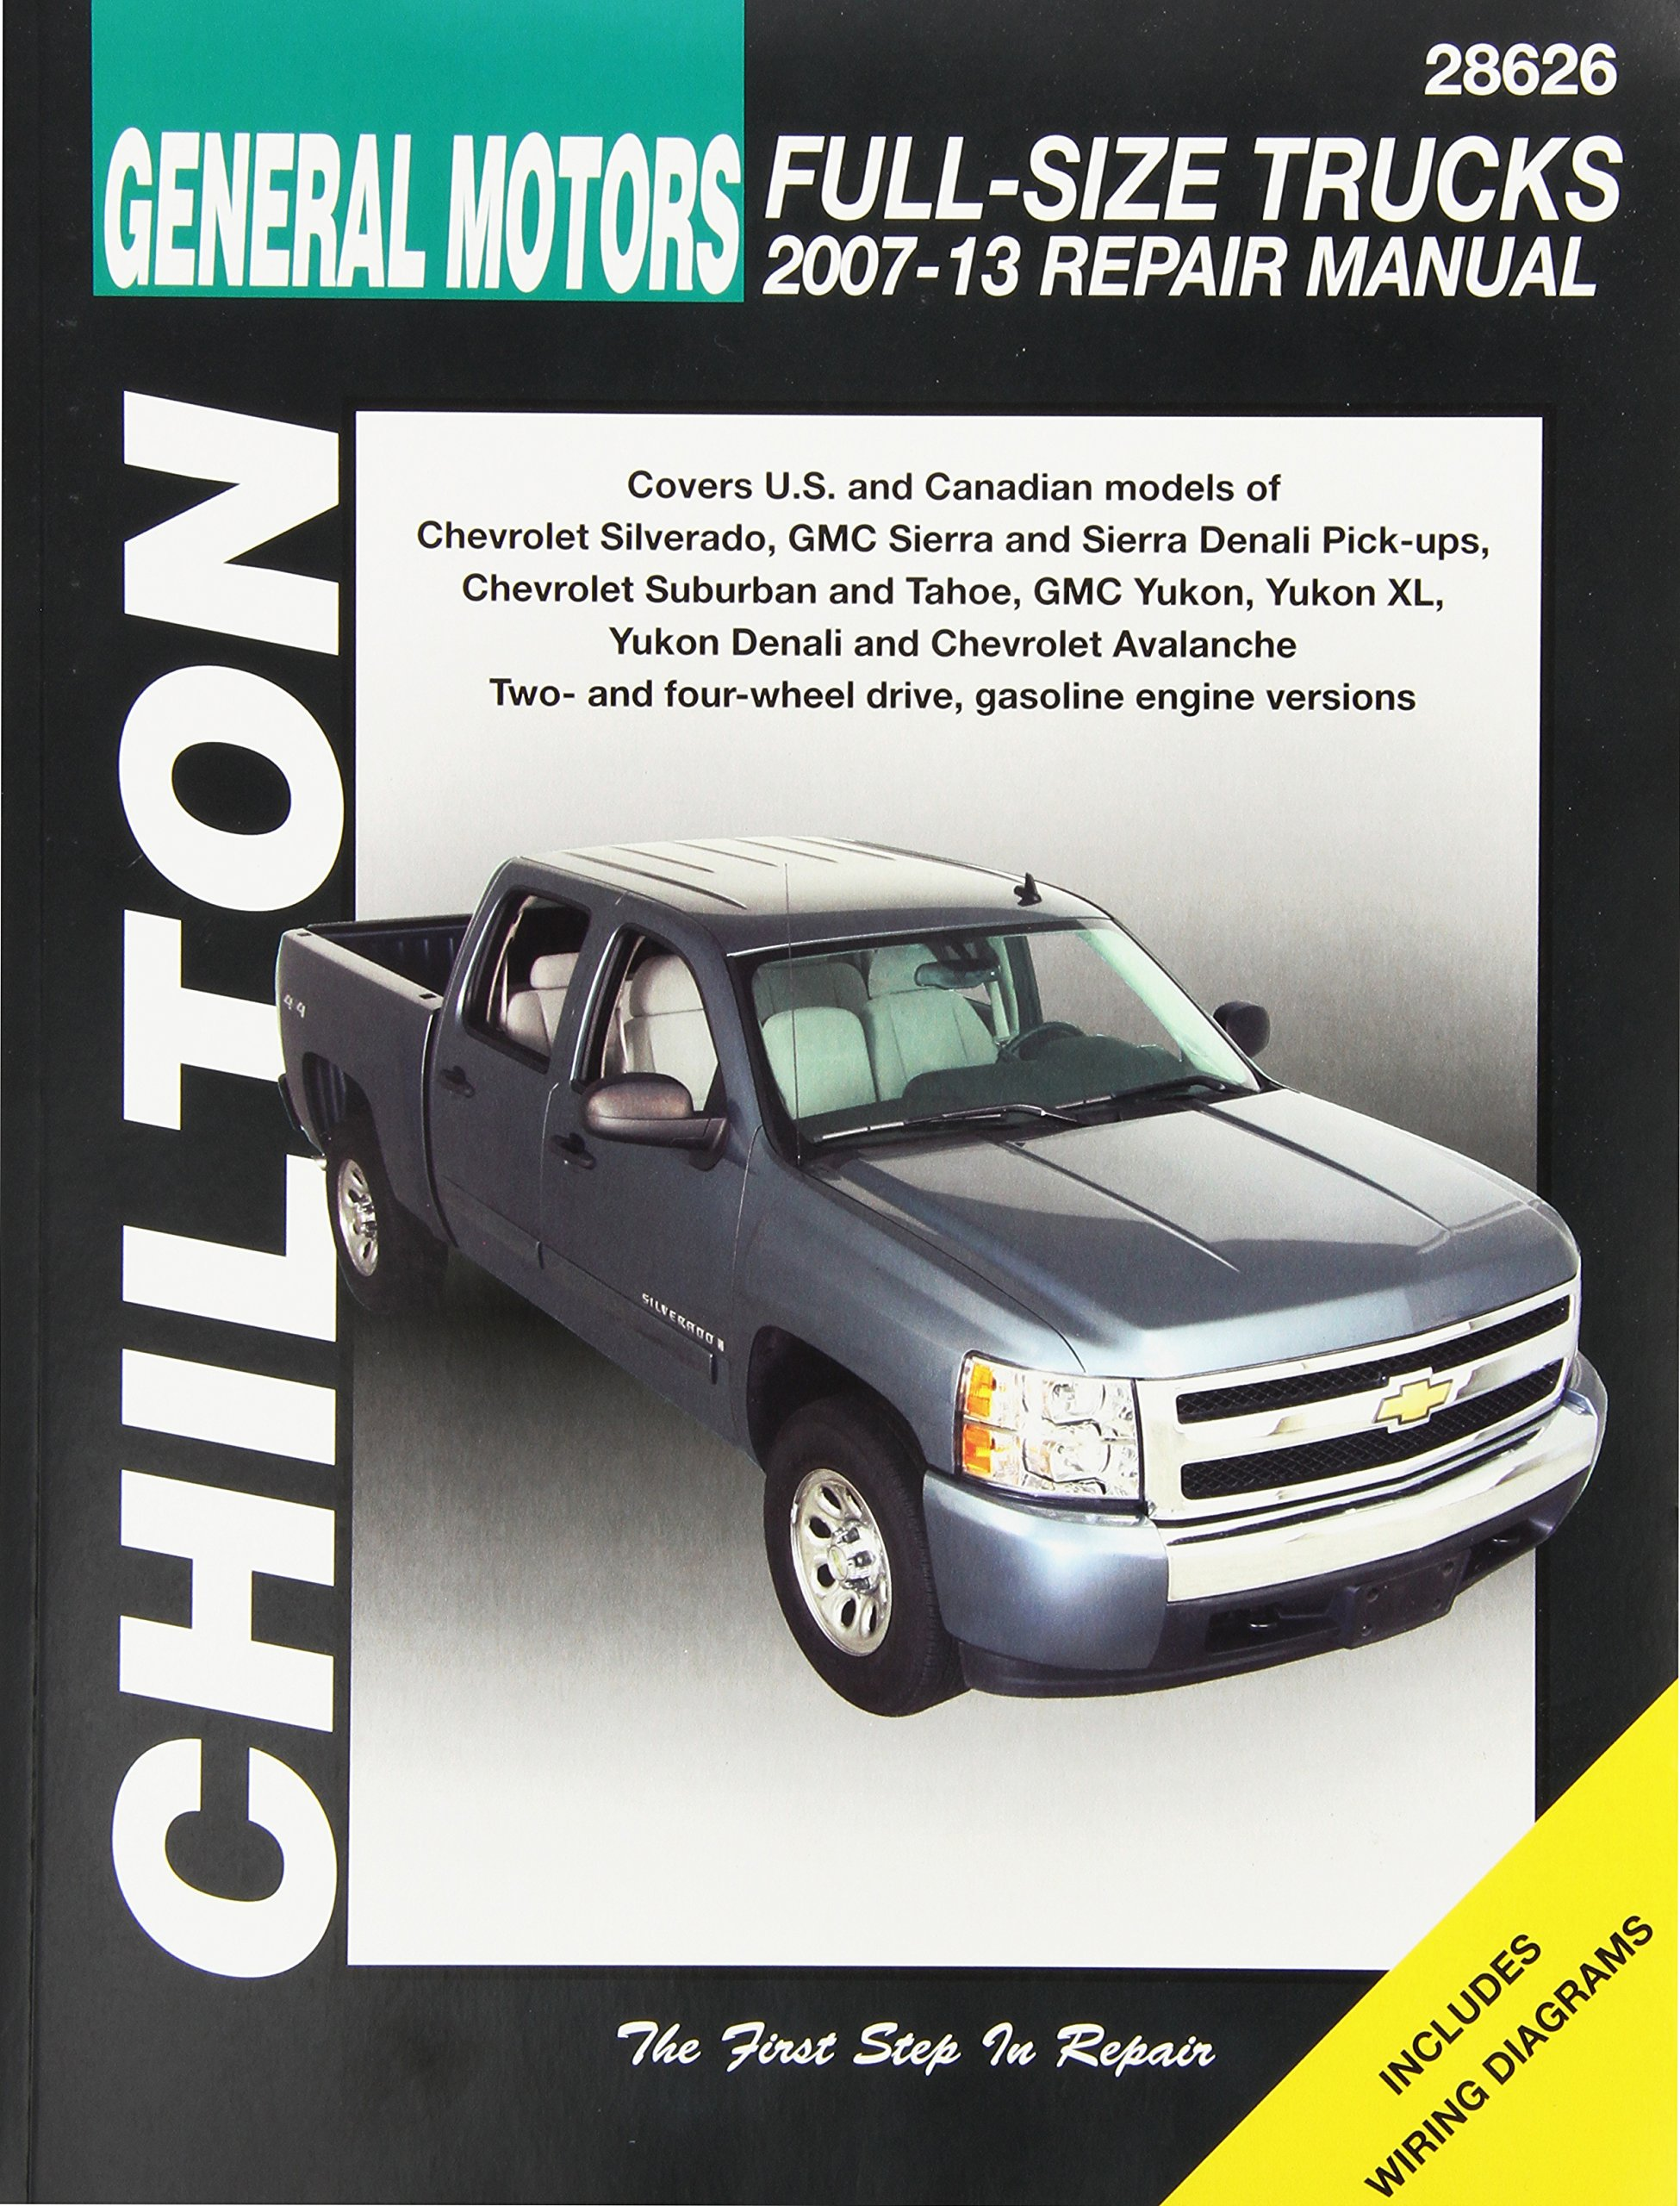 amazon com gm full size trucks chilton repair manual 2007 2012 rh amazon com 2005 gmc yukon manuals online 2005 gmc yukon denali service manual